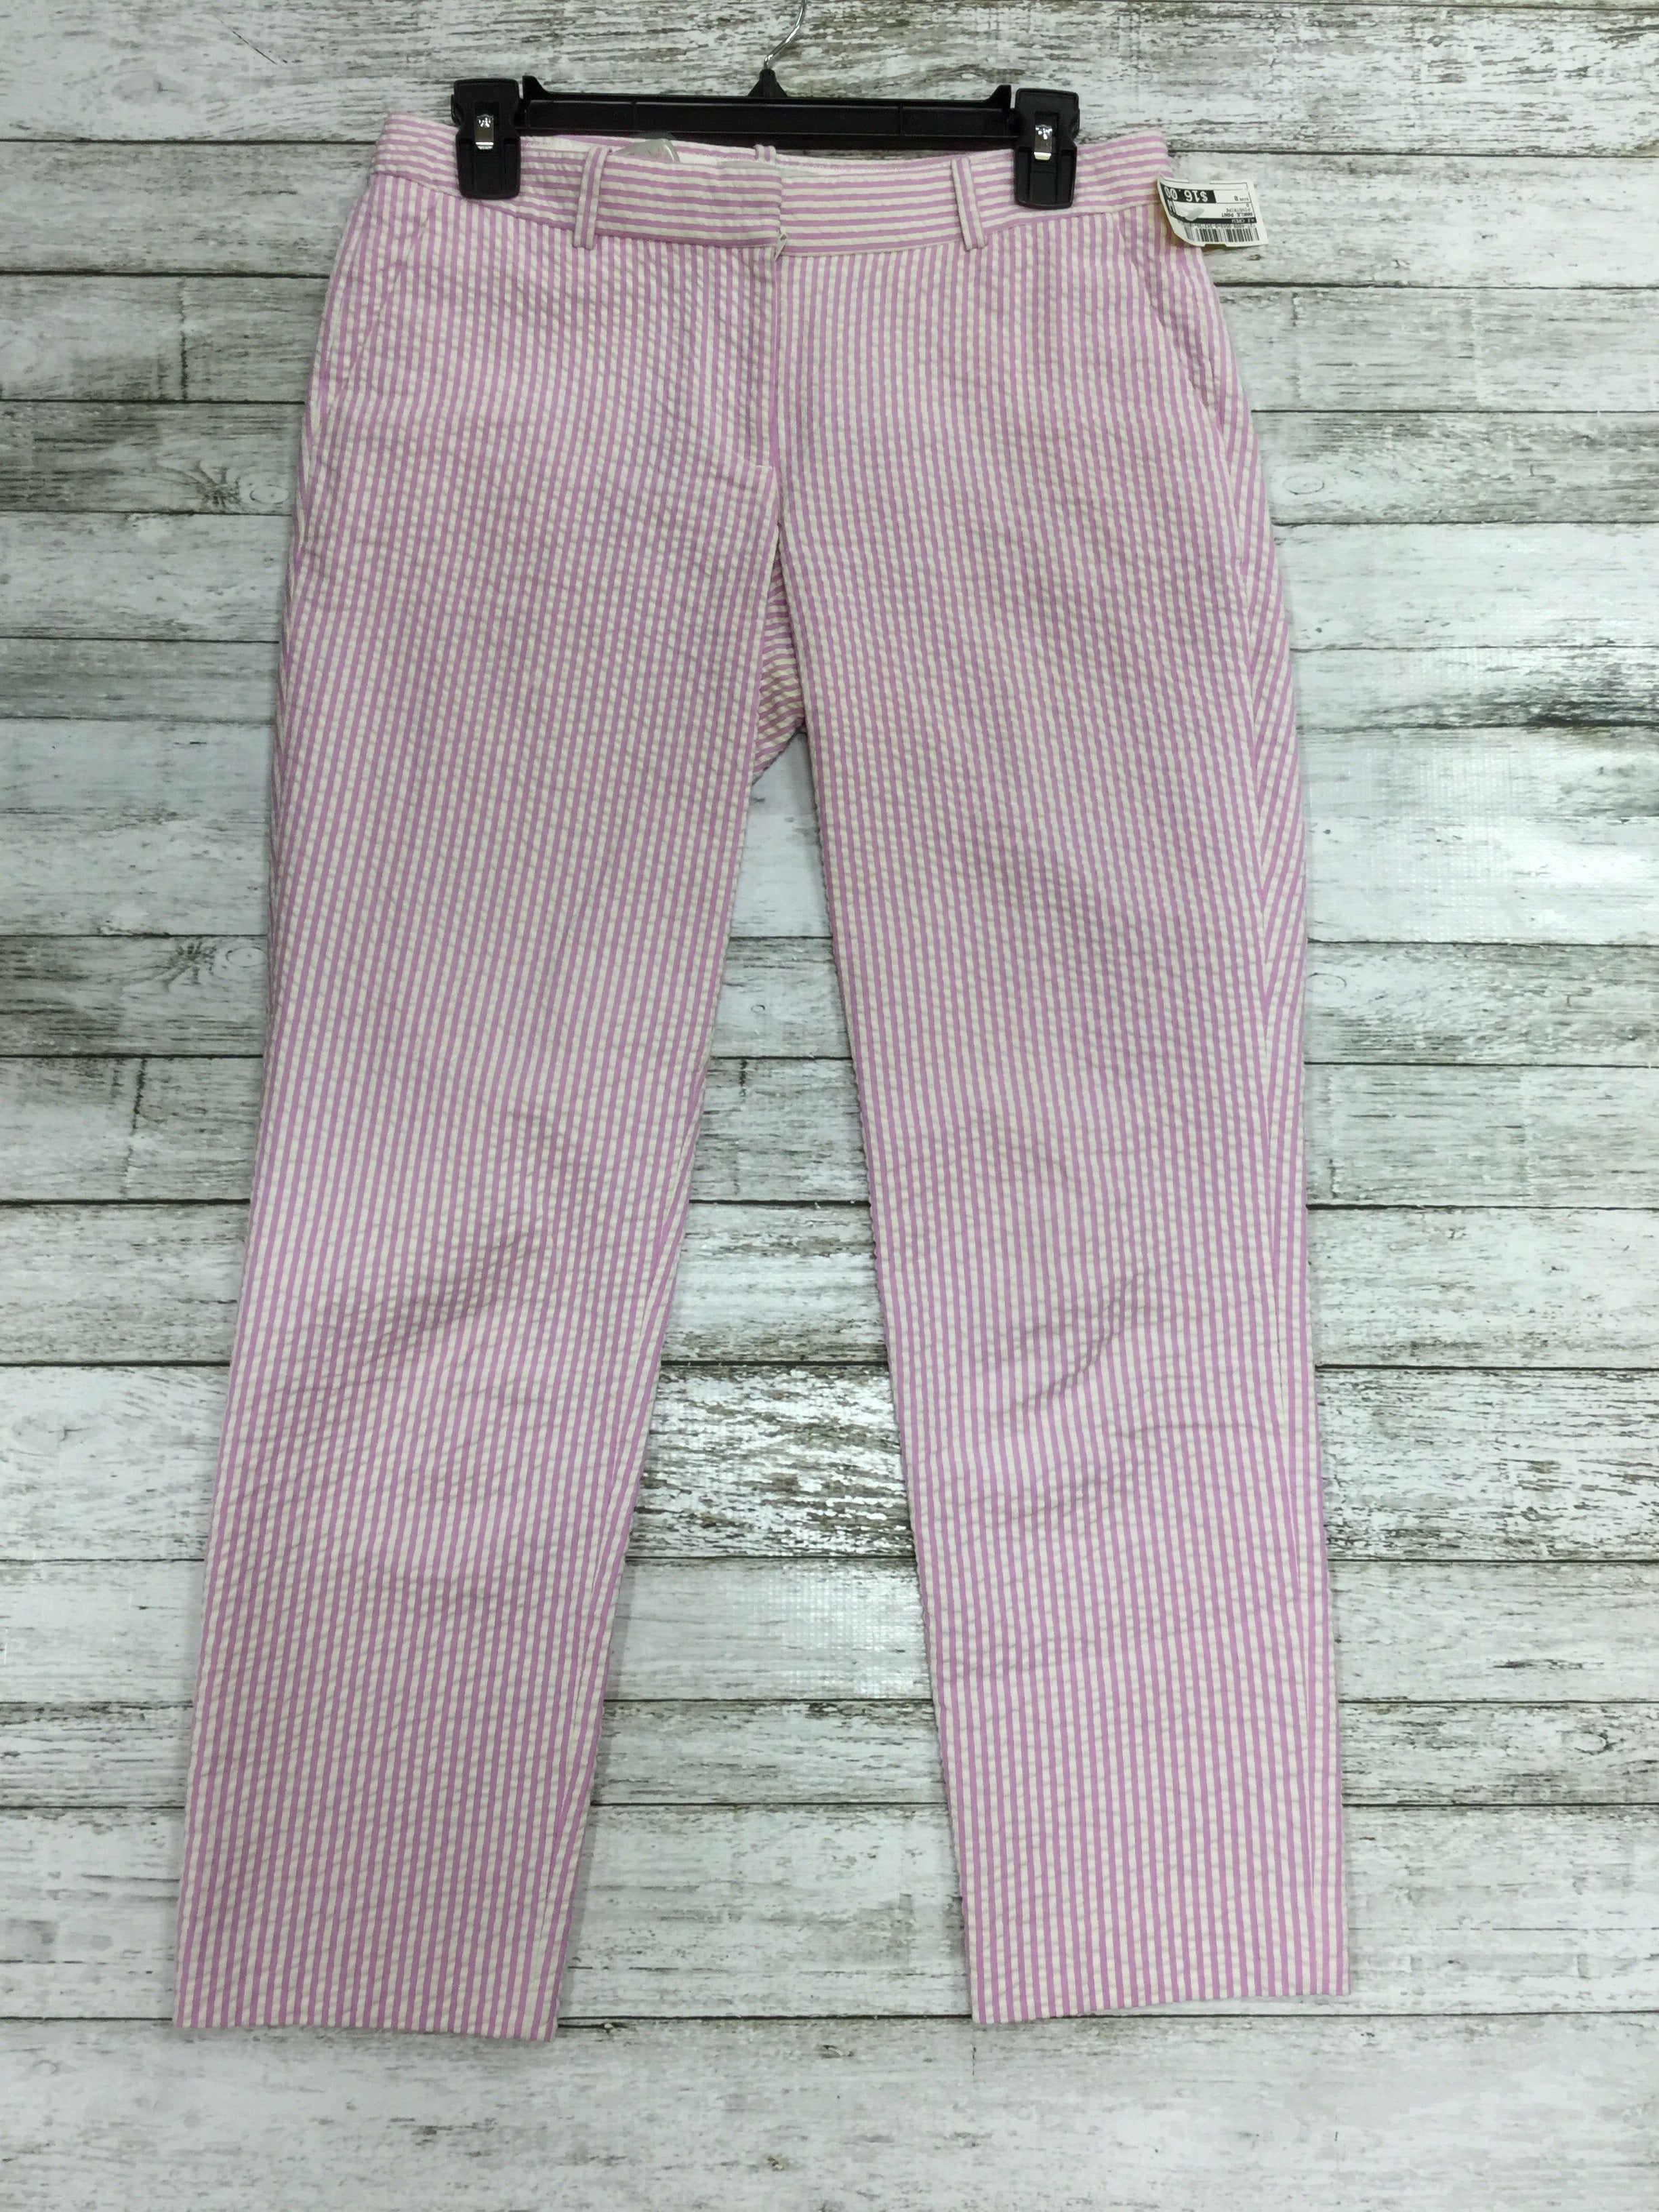 Primary Photo - BRAND: J CREW <BR>STYLE: ANKLE PANT <BR>COLOR: PINSTRIPE <BR>SIZE: 0 <BR>SKU: 127-4008-9569